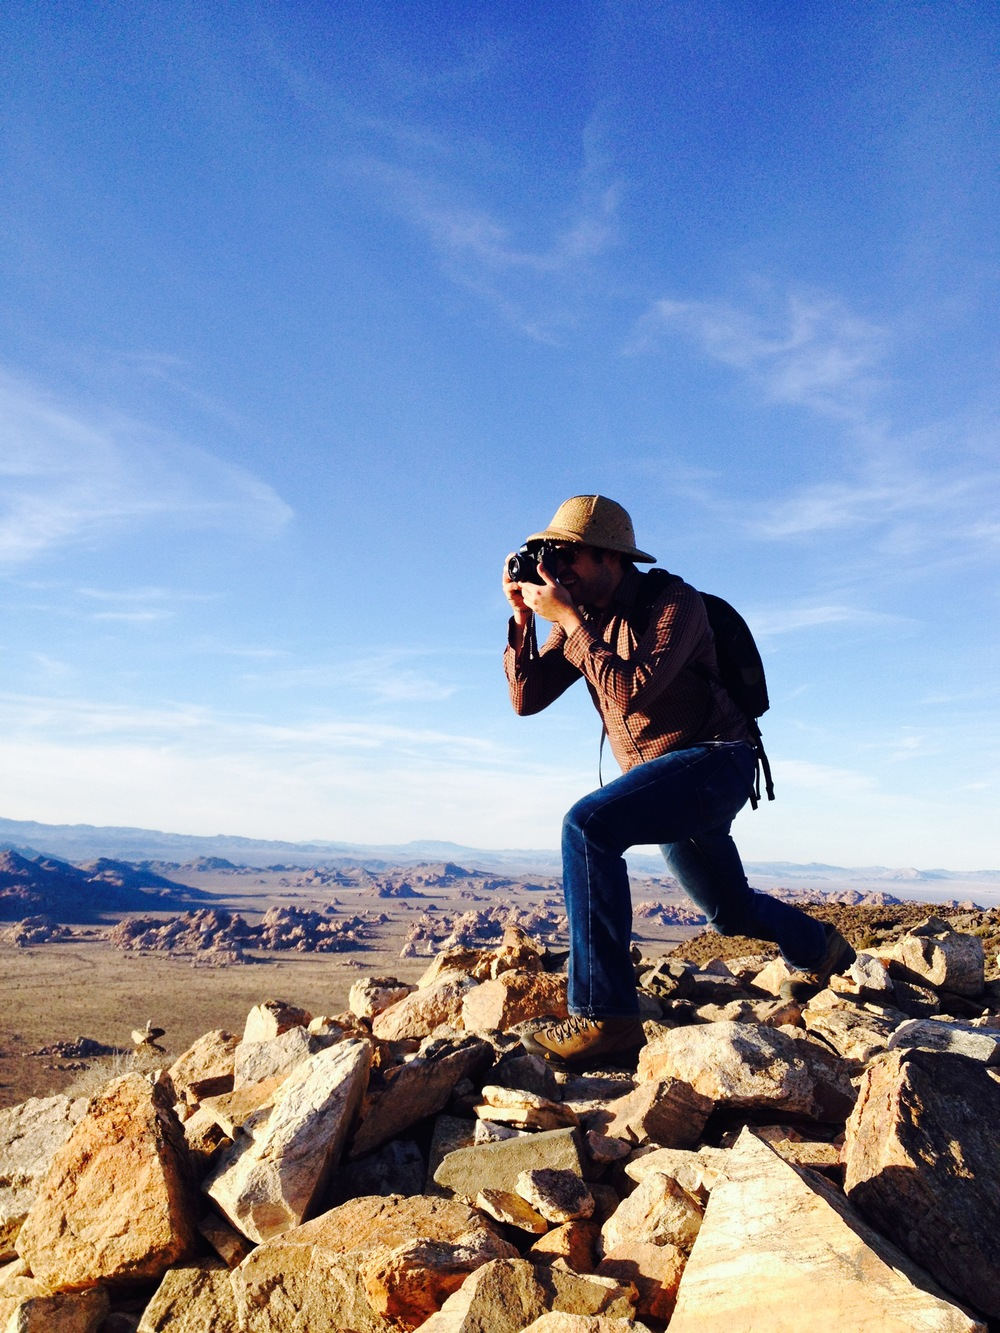 Bryan on Ryan Mountain, doing his best Ansel Adams